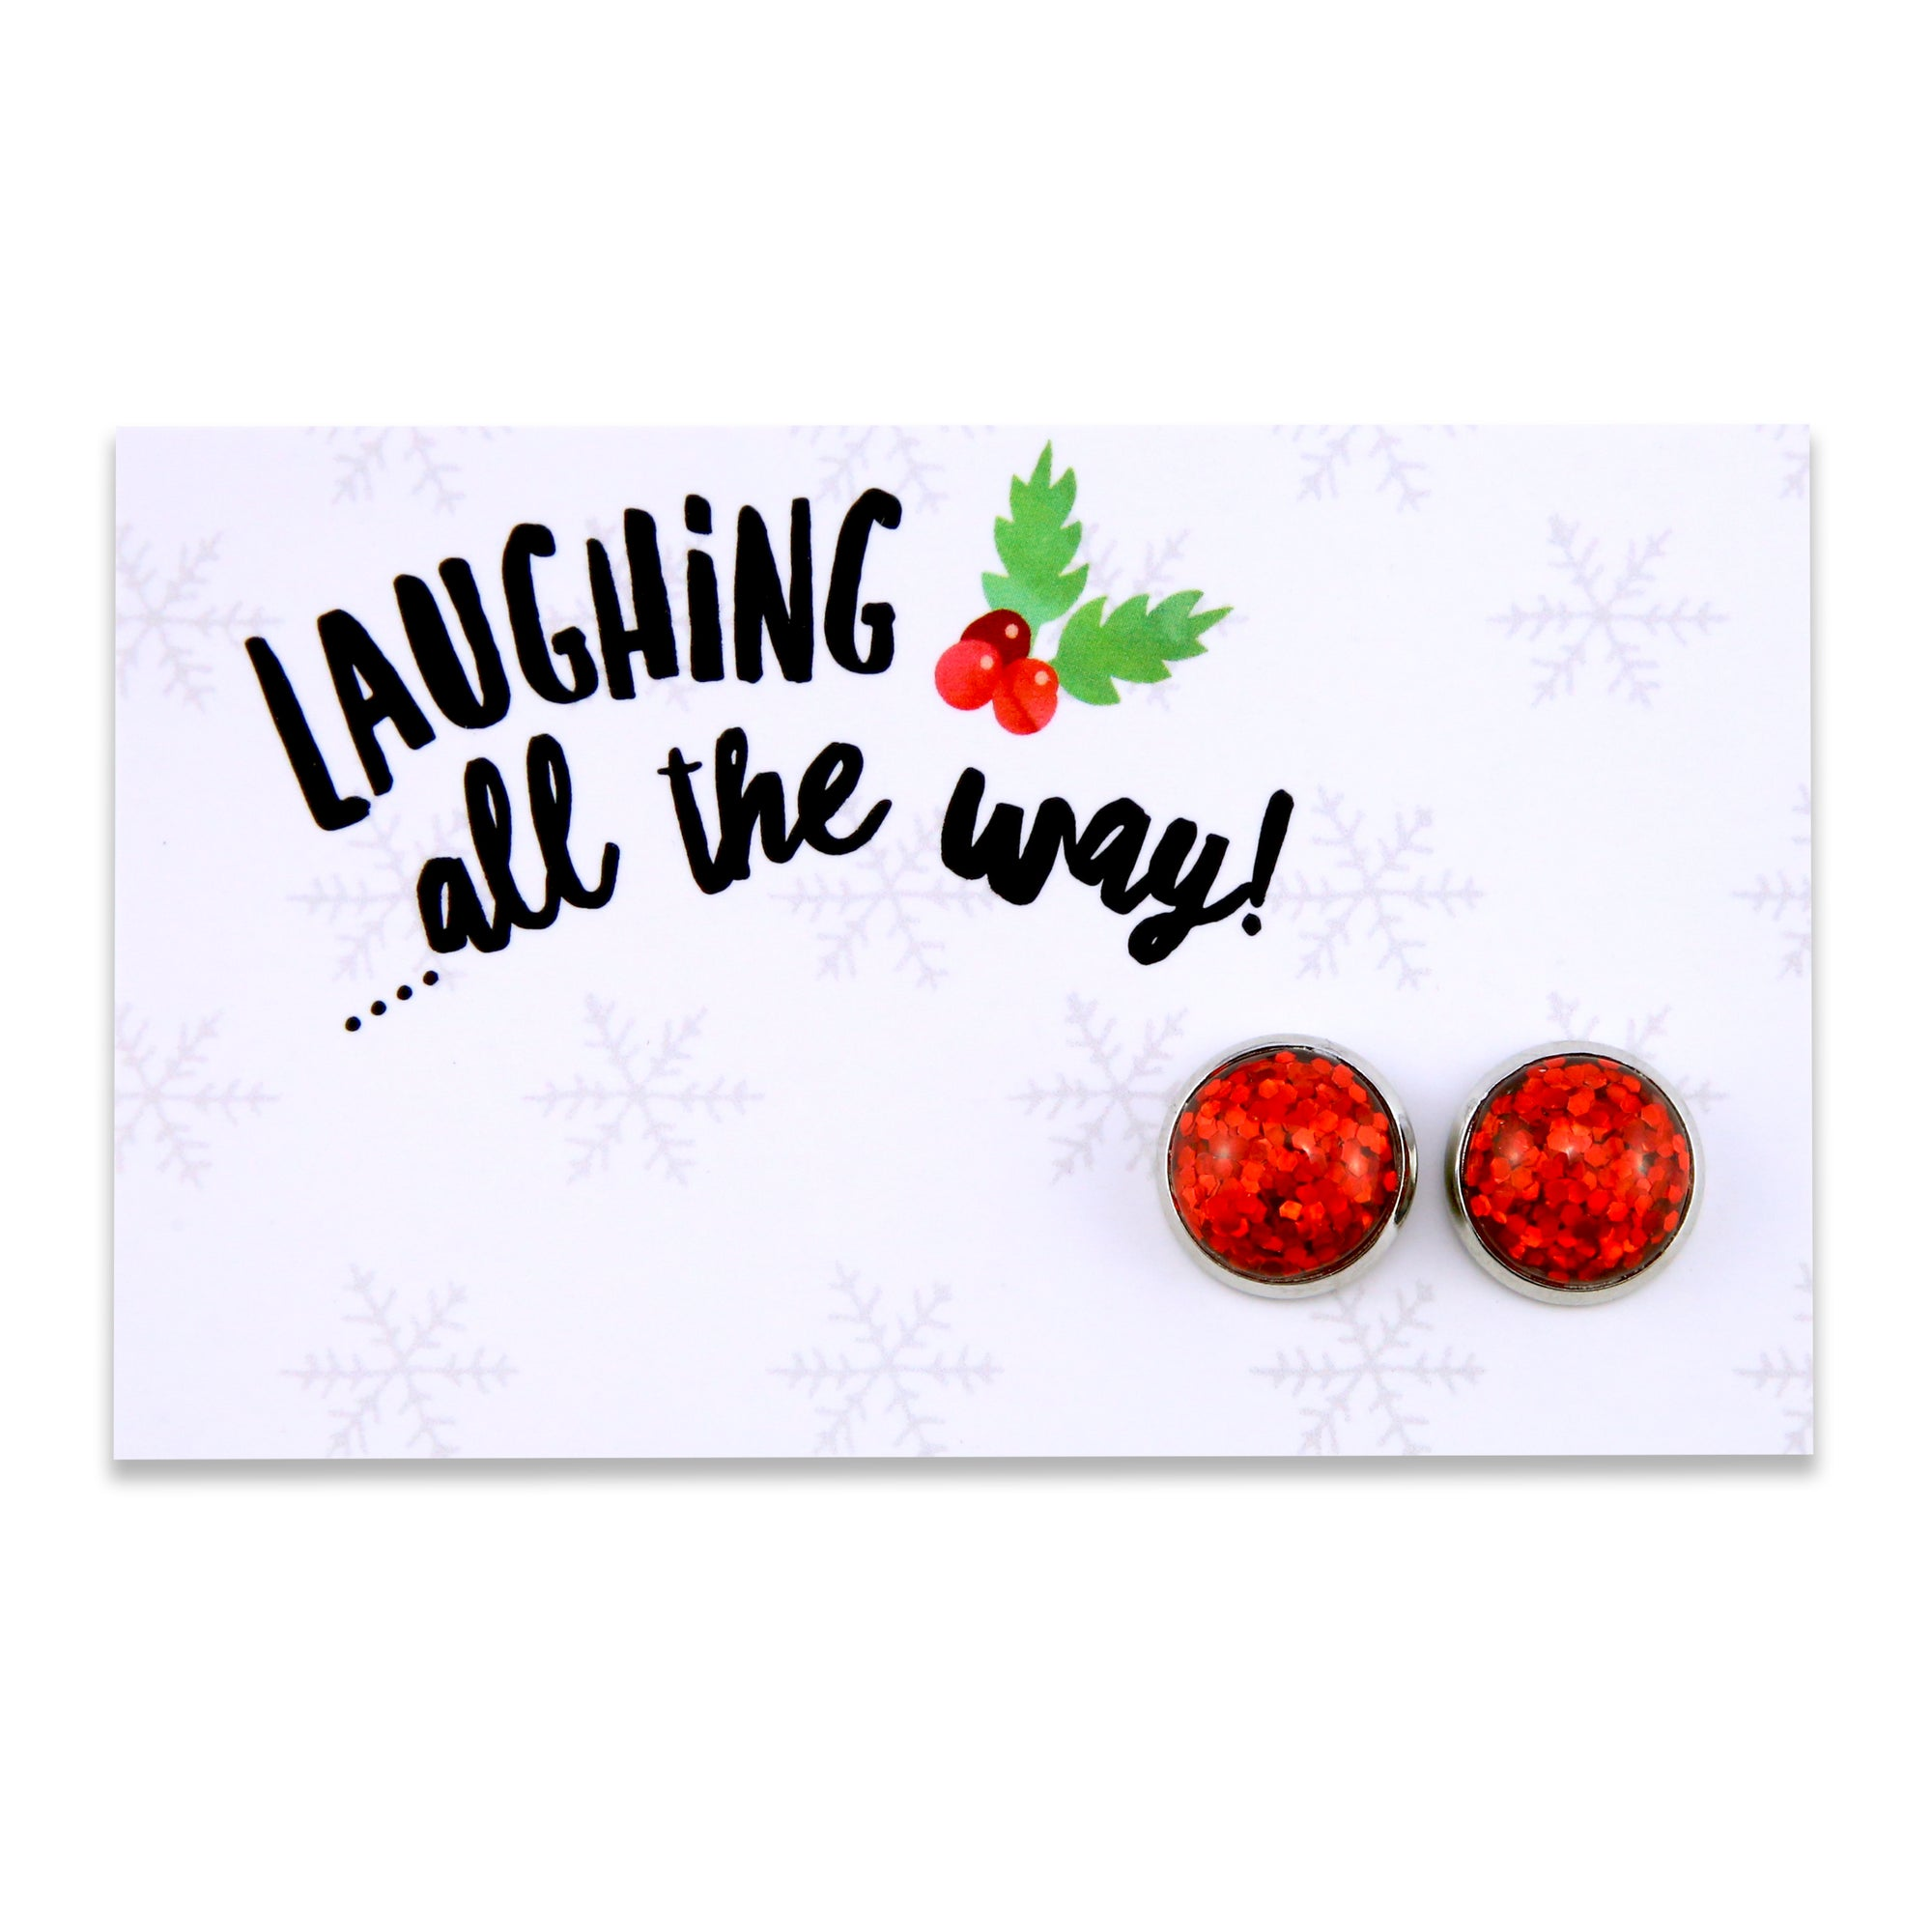 SPARKLEFEST - Laughing All The Way! Glitter Earrings set in Vintage Silver - Ruby Red (8101)